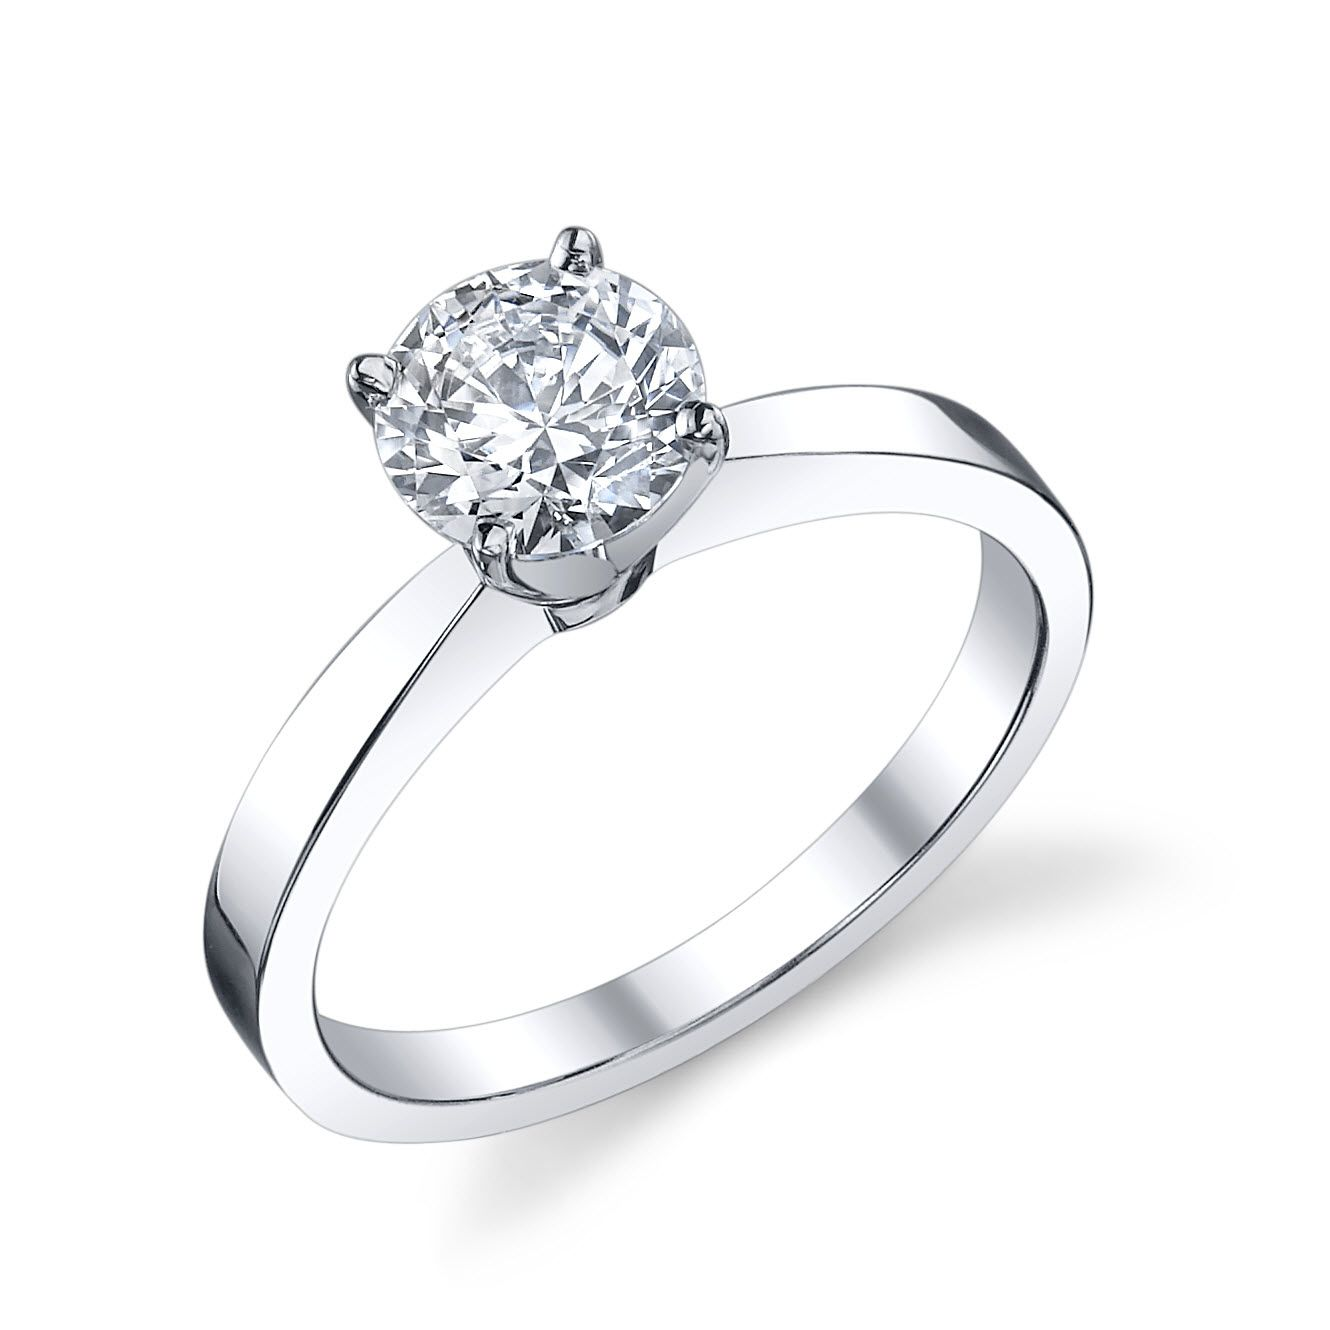 Is The Perfect Engagement Ring Secret To Lasting Love